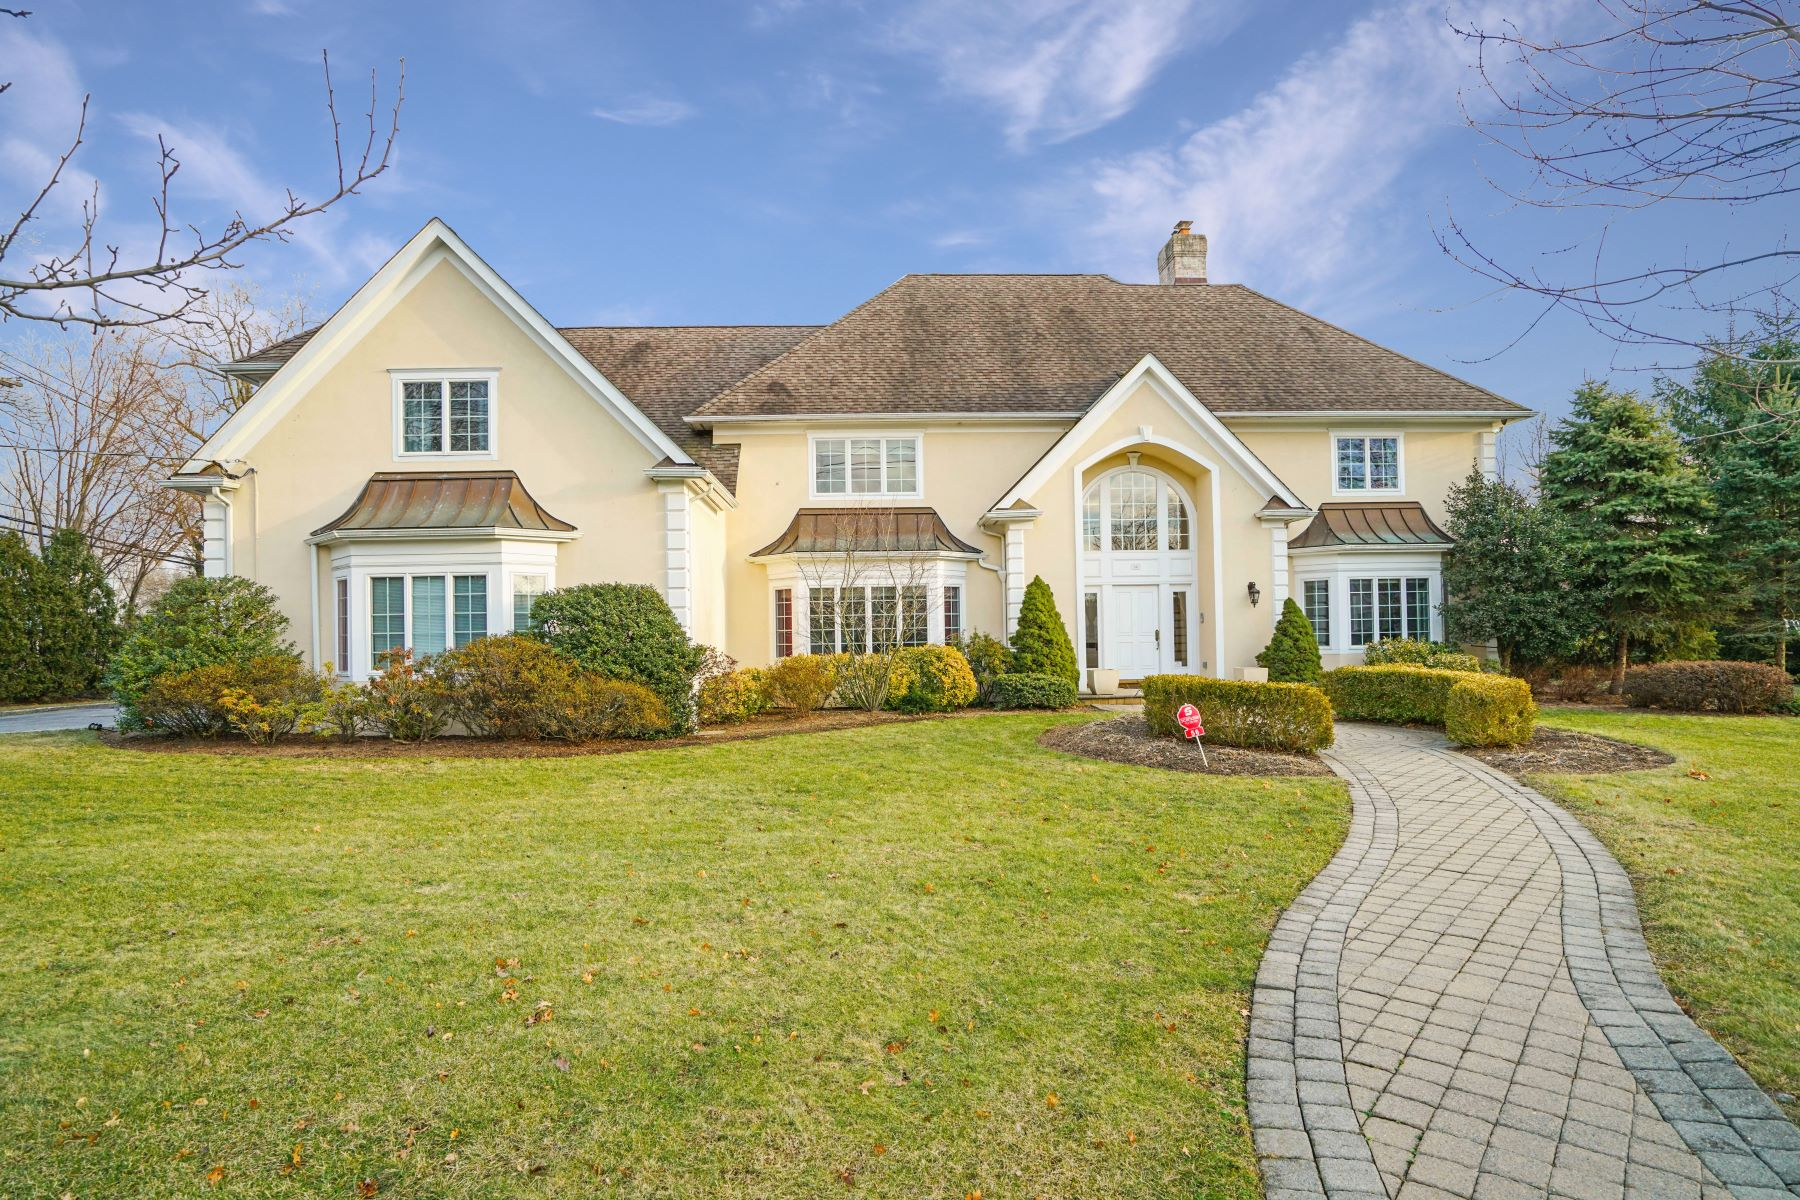 Single Family Home for Sale at Stunning Modern Colonial in Scarsdale 56 Harvest Drive, Scarsdale, New York, 10583 United States